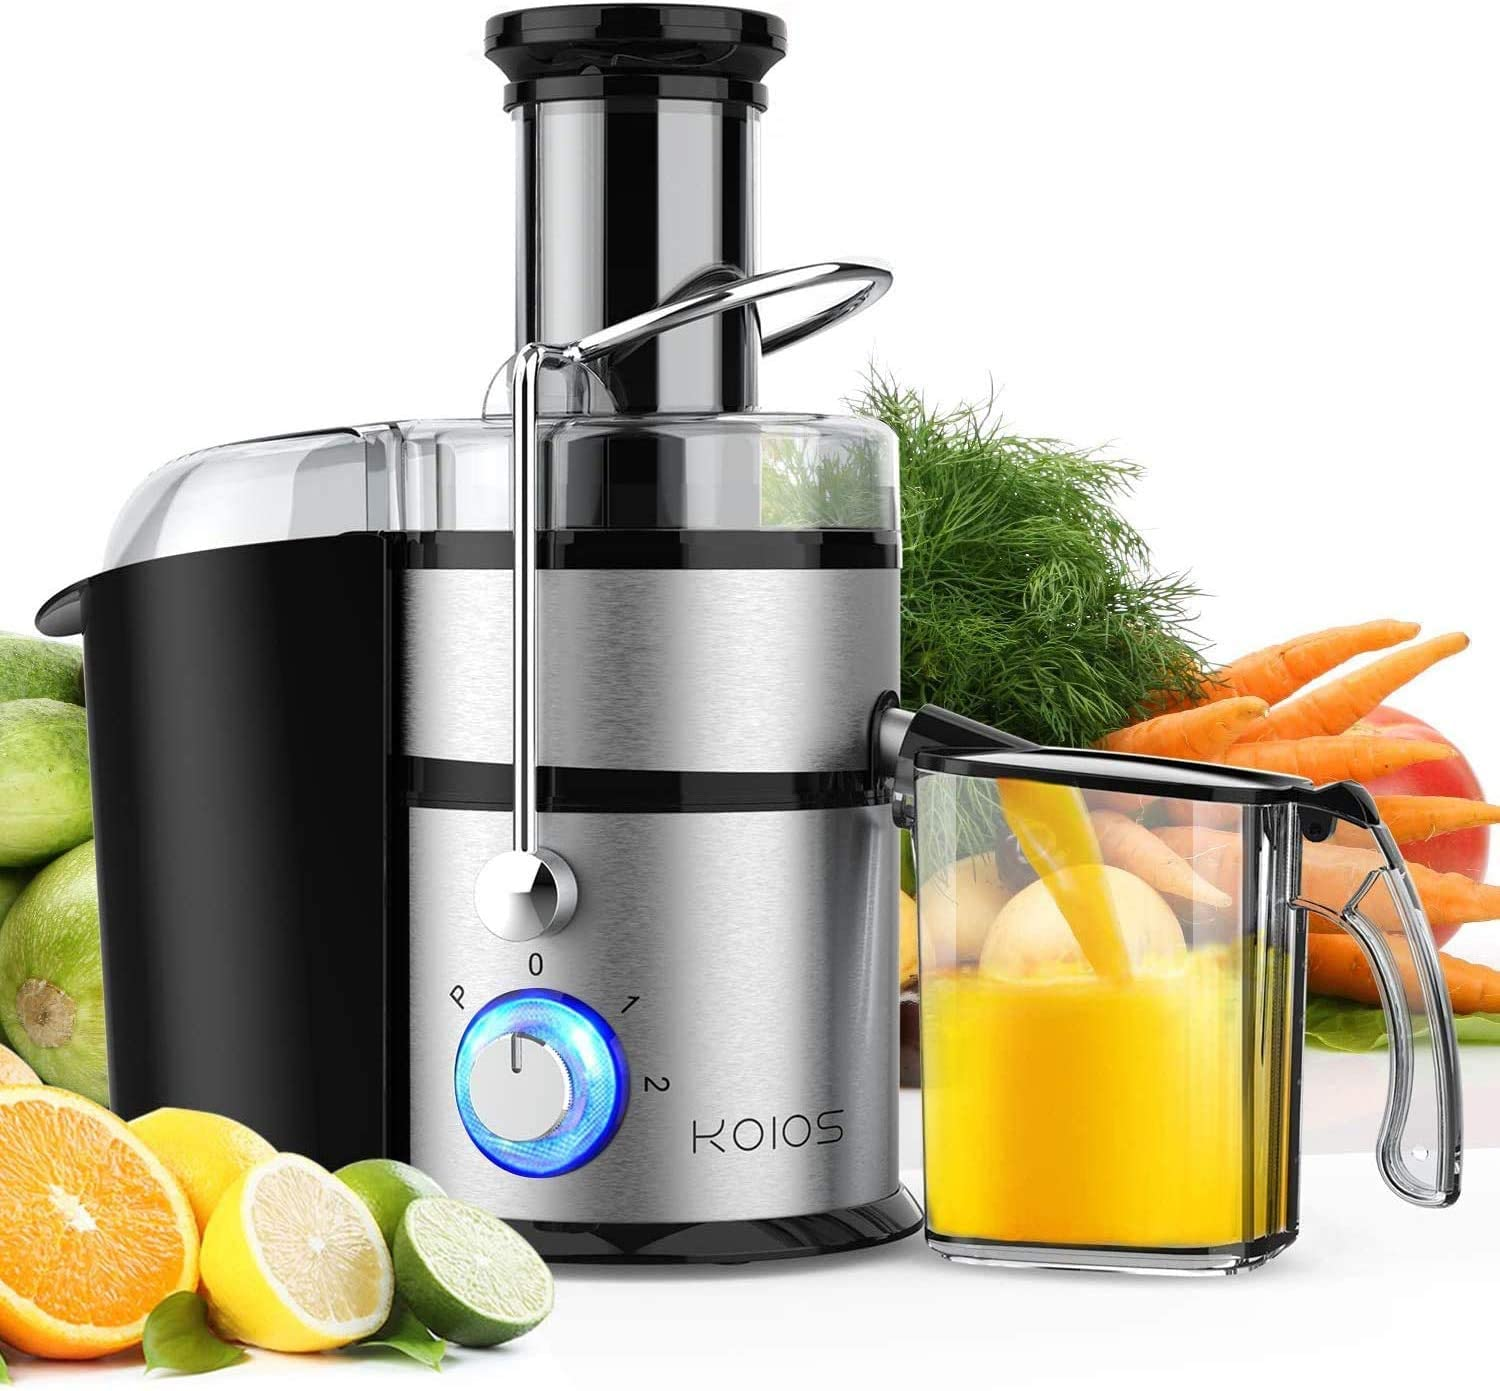 """KOIOS Centrifugal Juicer Machines, Juice Extractor with Big Mouth 3"""" Feed Chute, 304 Stainless-steel Fliter, Best Seller Juicer 2021, High Juice yield, Easy to Clean&100% BPA-Free, 1200W&Powerful, Dishwasher Safe, Included Brush"""